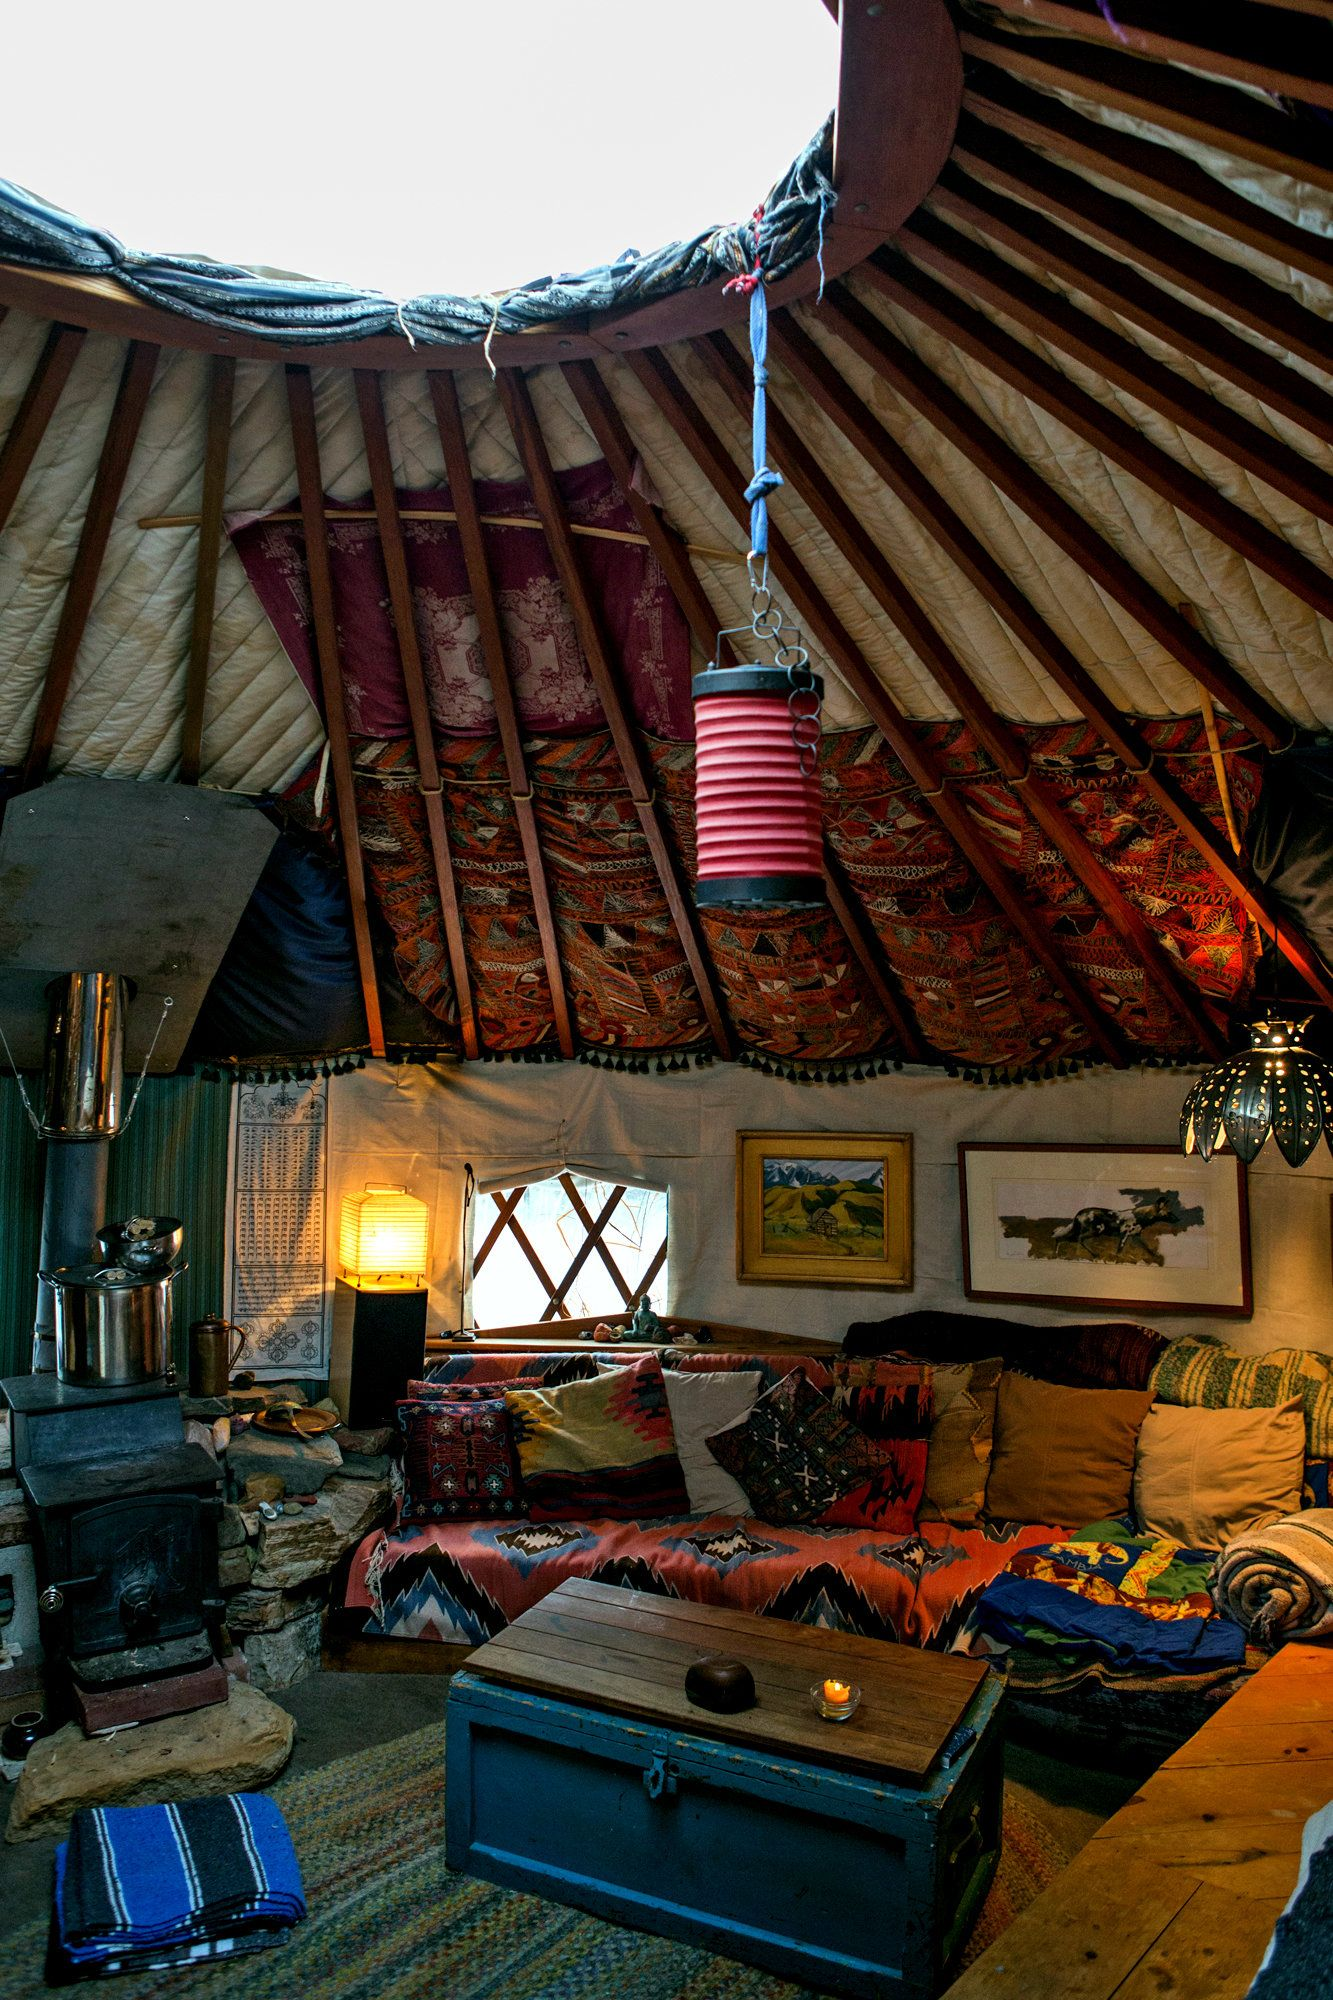 Square Peg in a Round House | Yurt interior, Round house ...